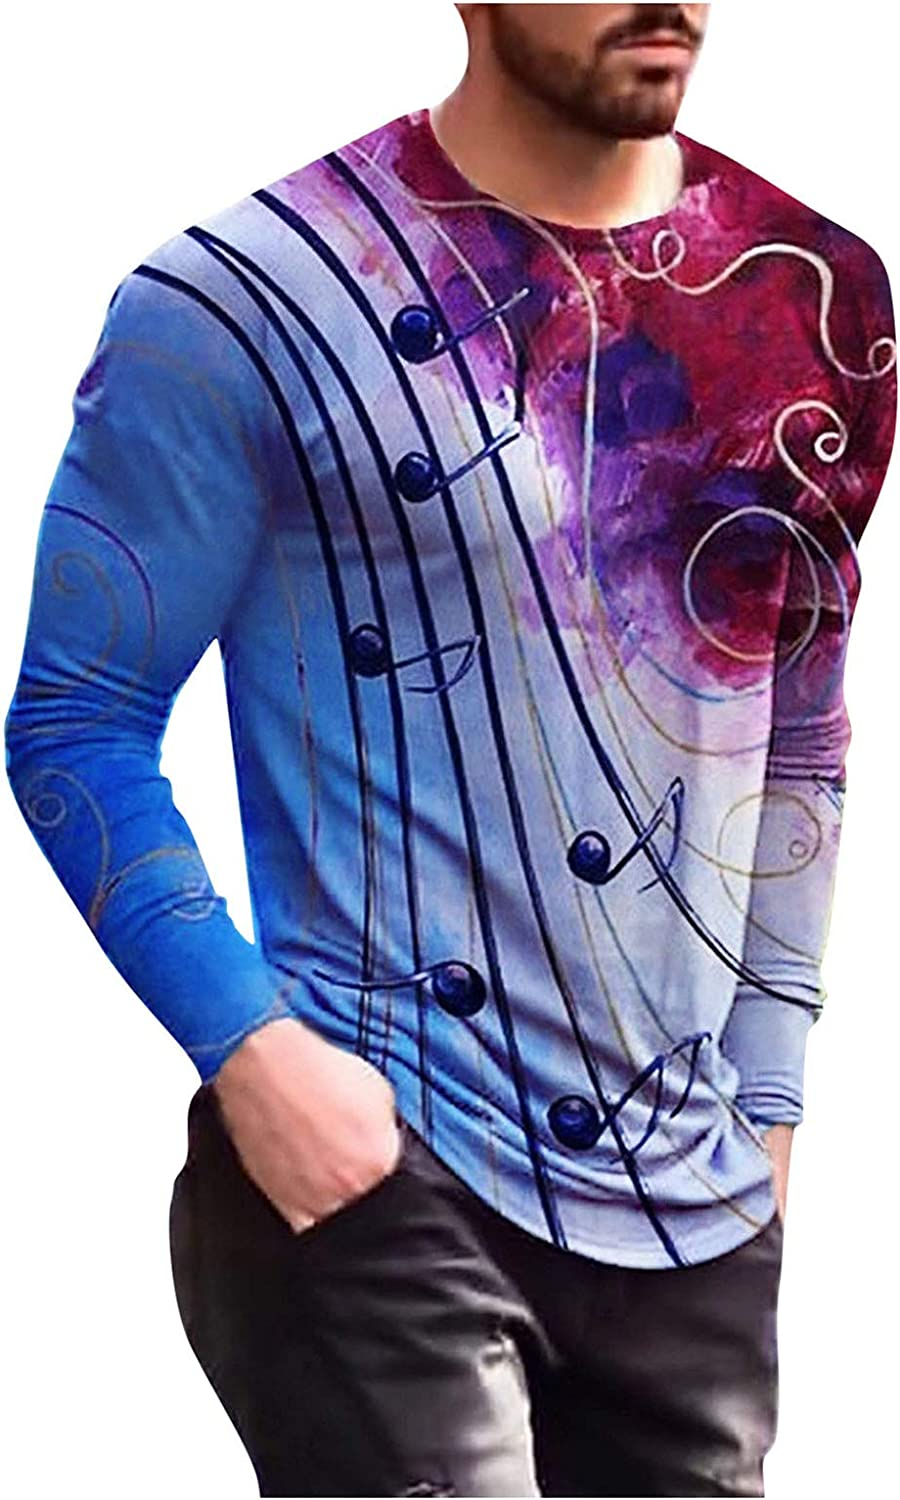 Men Spring Long Sleeve Shirts Fashion Printed Fitness Shirts Casual Round Neck Tops for Men Holiday Beach Shirts